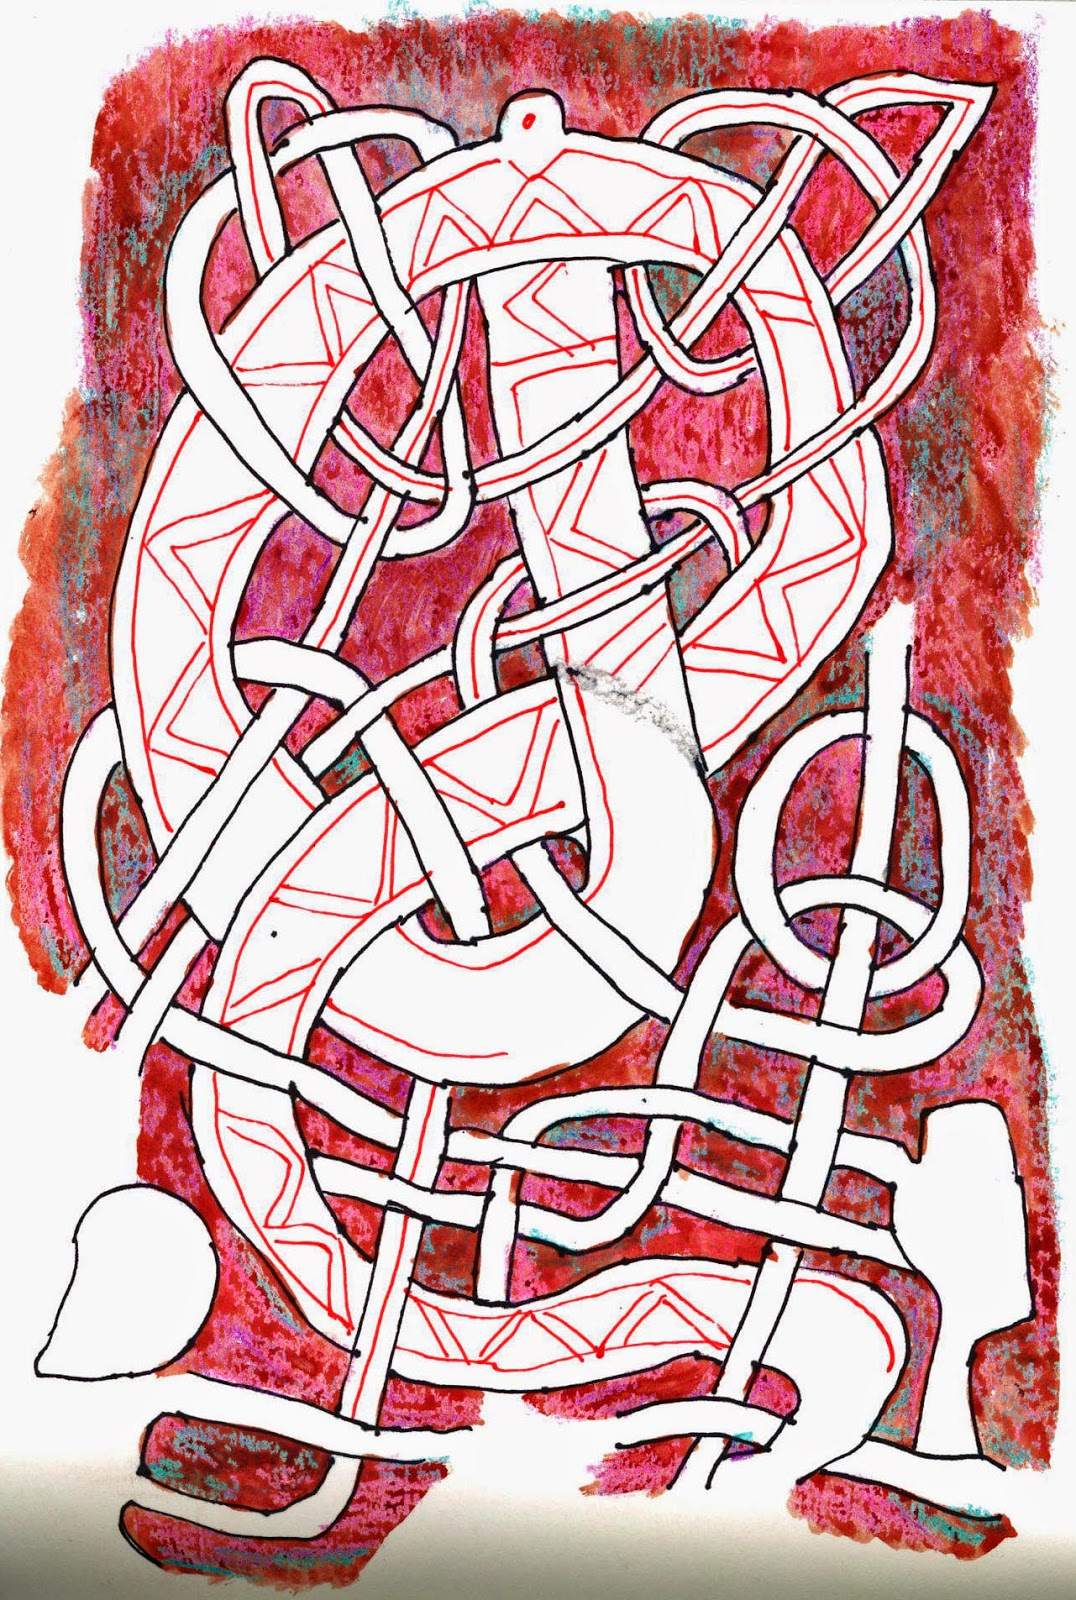 My mixed media sketch of more knotwork - perhaps with a dragon?